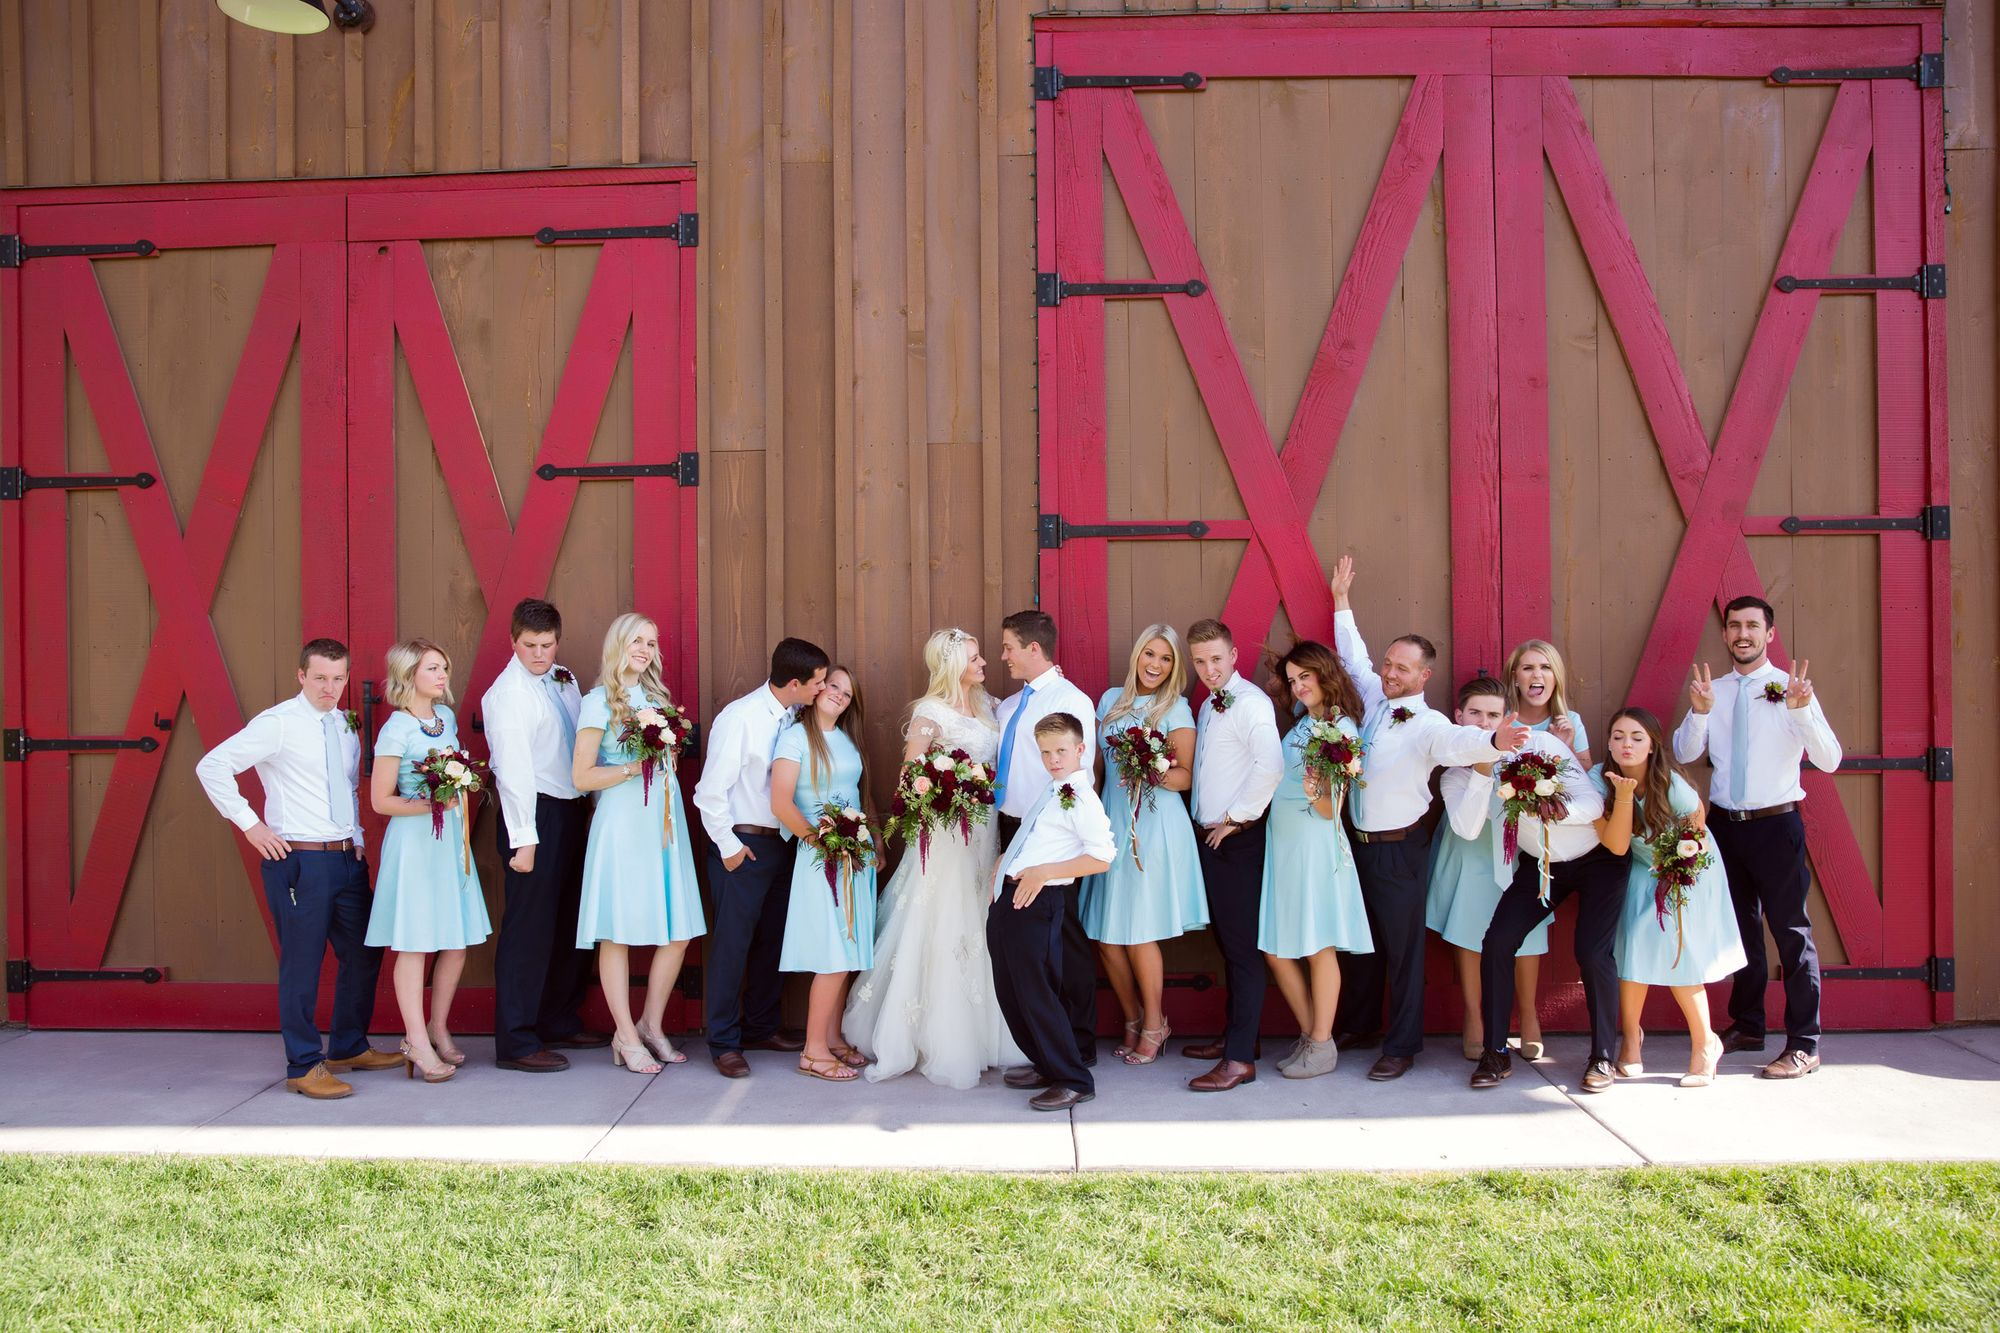 Tori_Sterling_Quiet_Meadow_Farms_Mapleton_Utah_Bride_Groom_Bridesmaids_Groomsmen.jpg